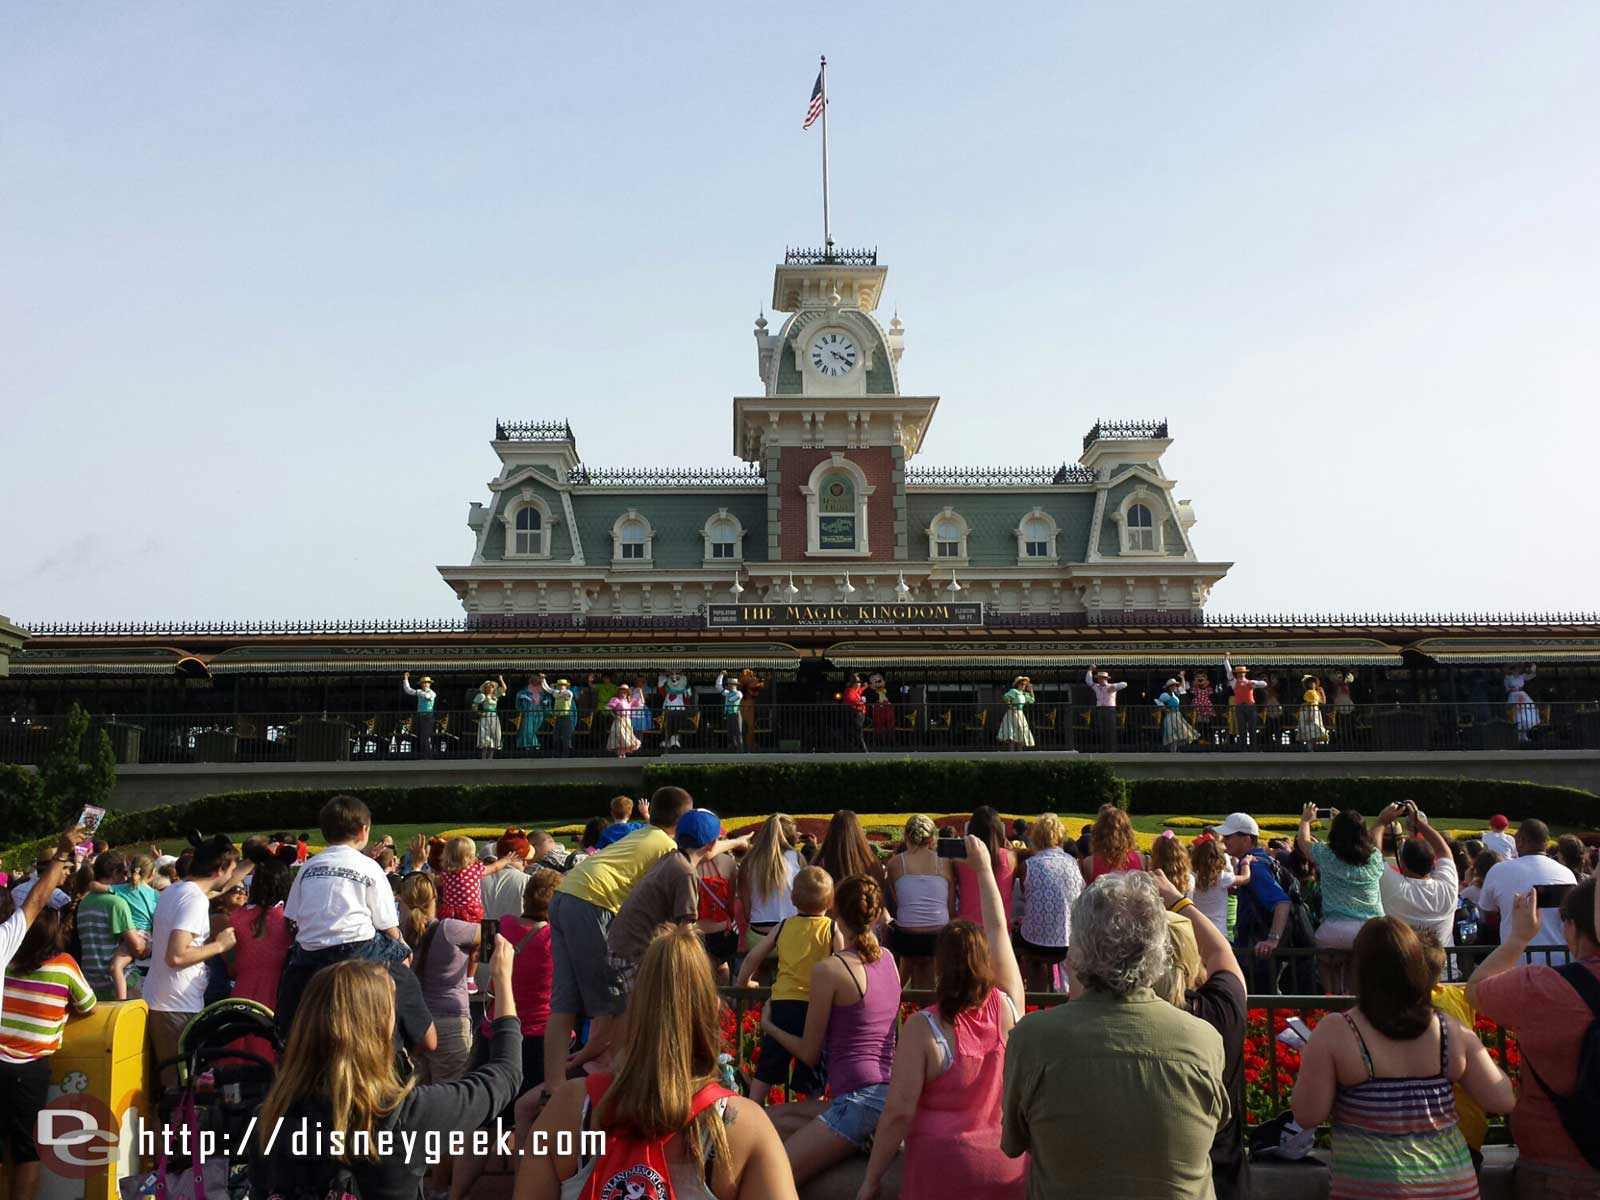 Arrived at the Magic Kingdom entrance just as the train was arriving for the opening.